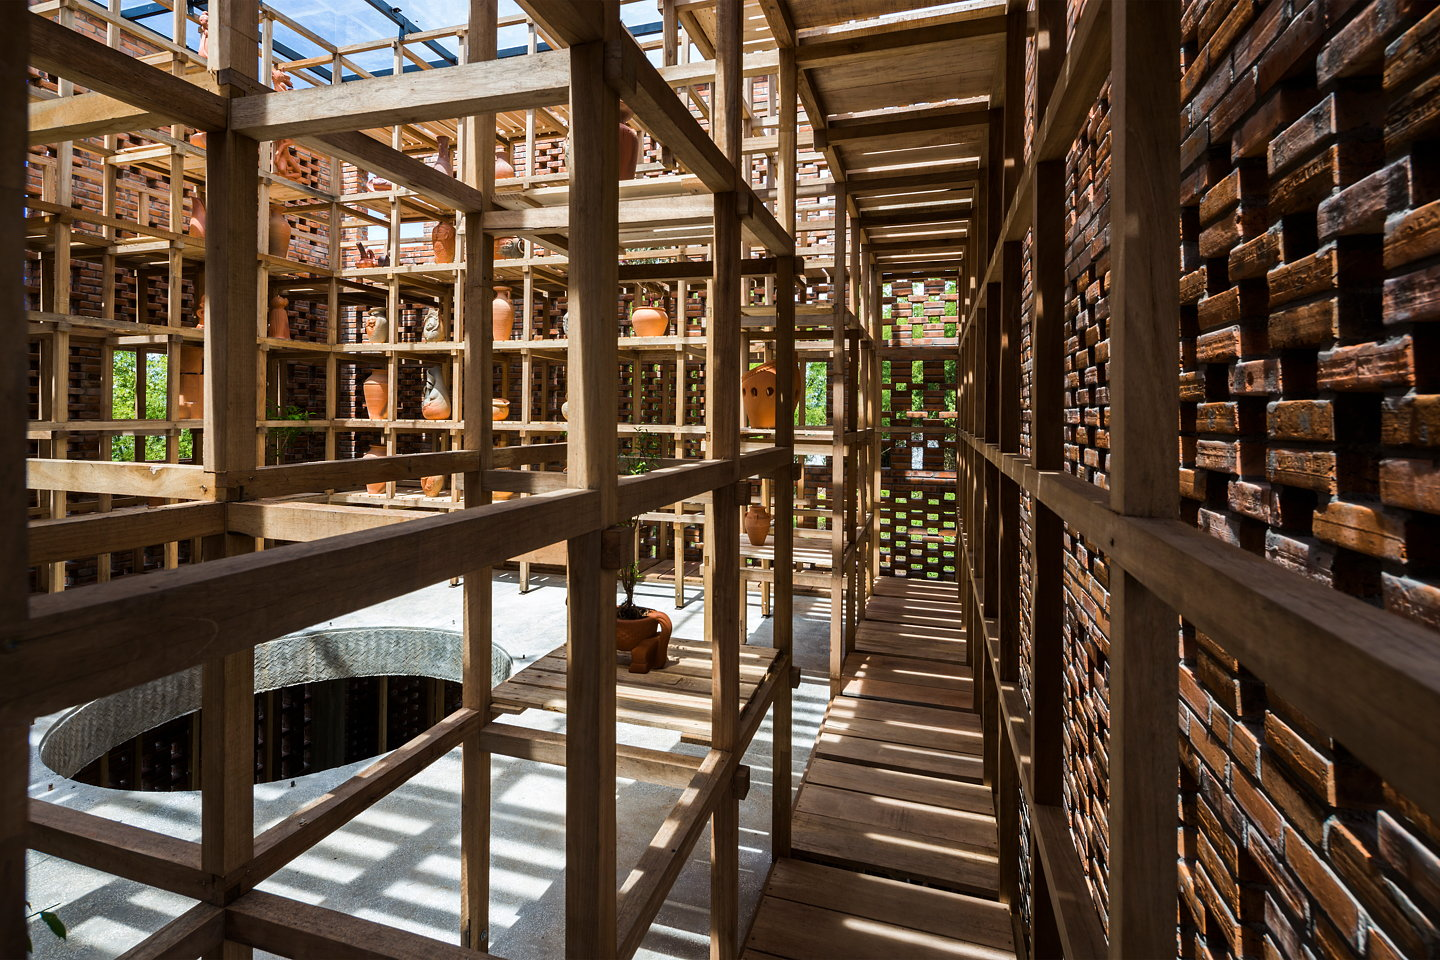 The Terra Cotta Studio by Tropical Space